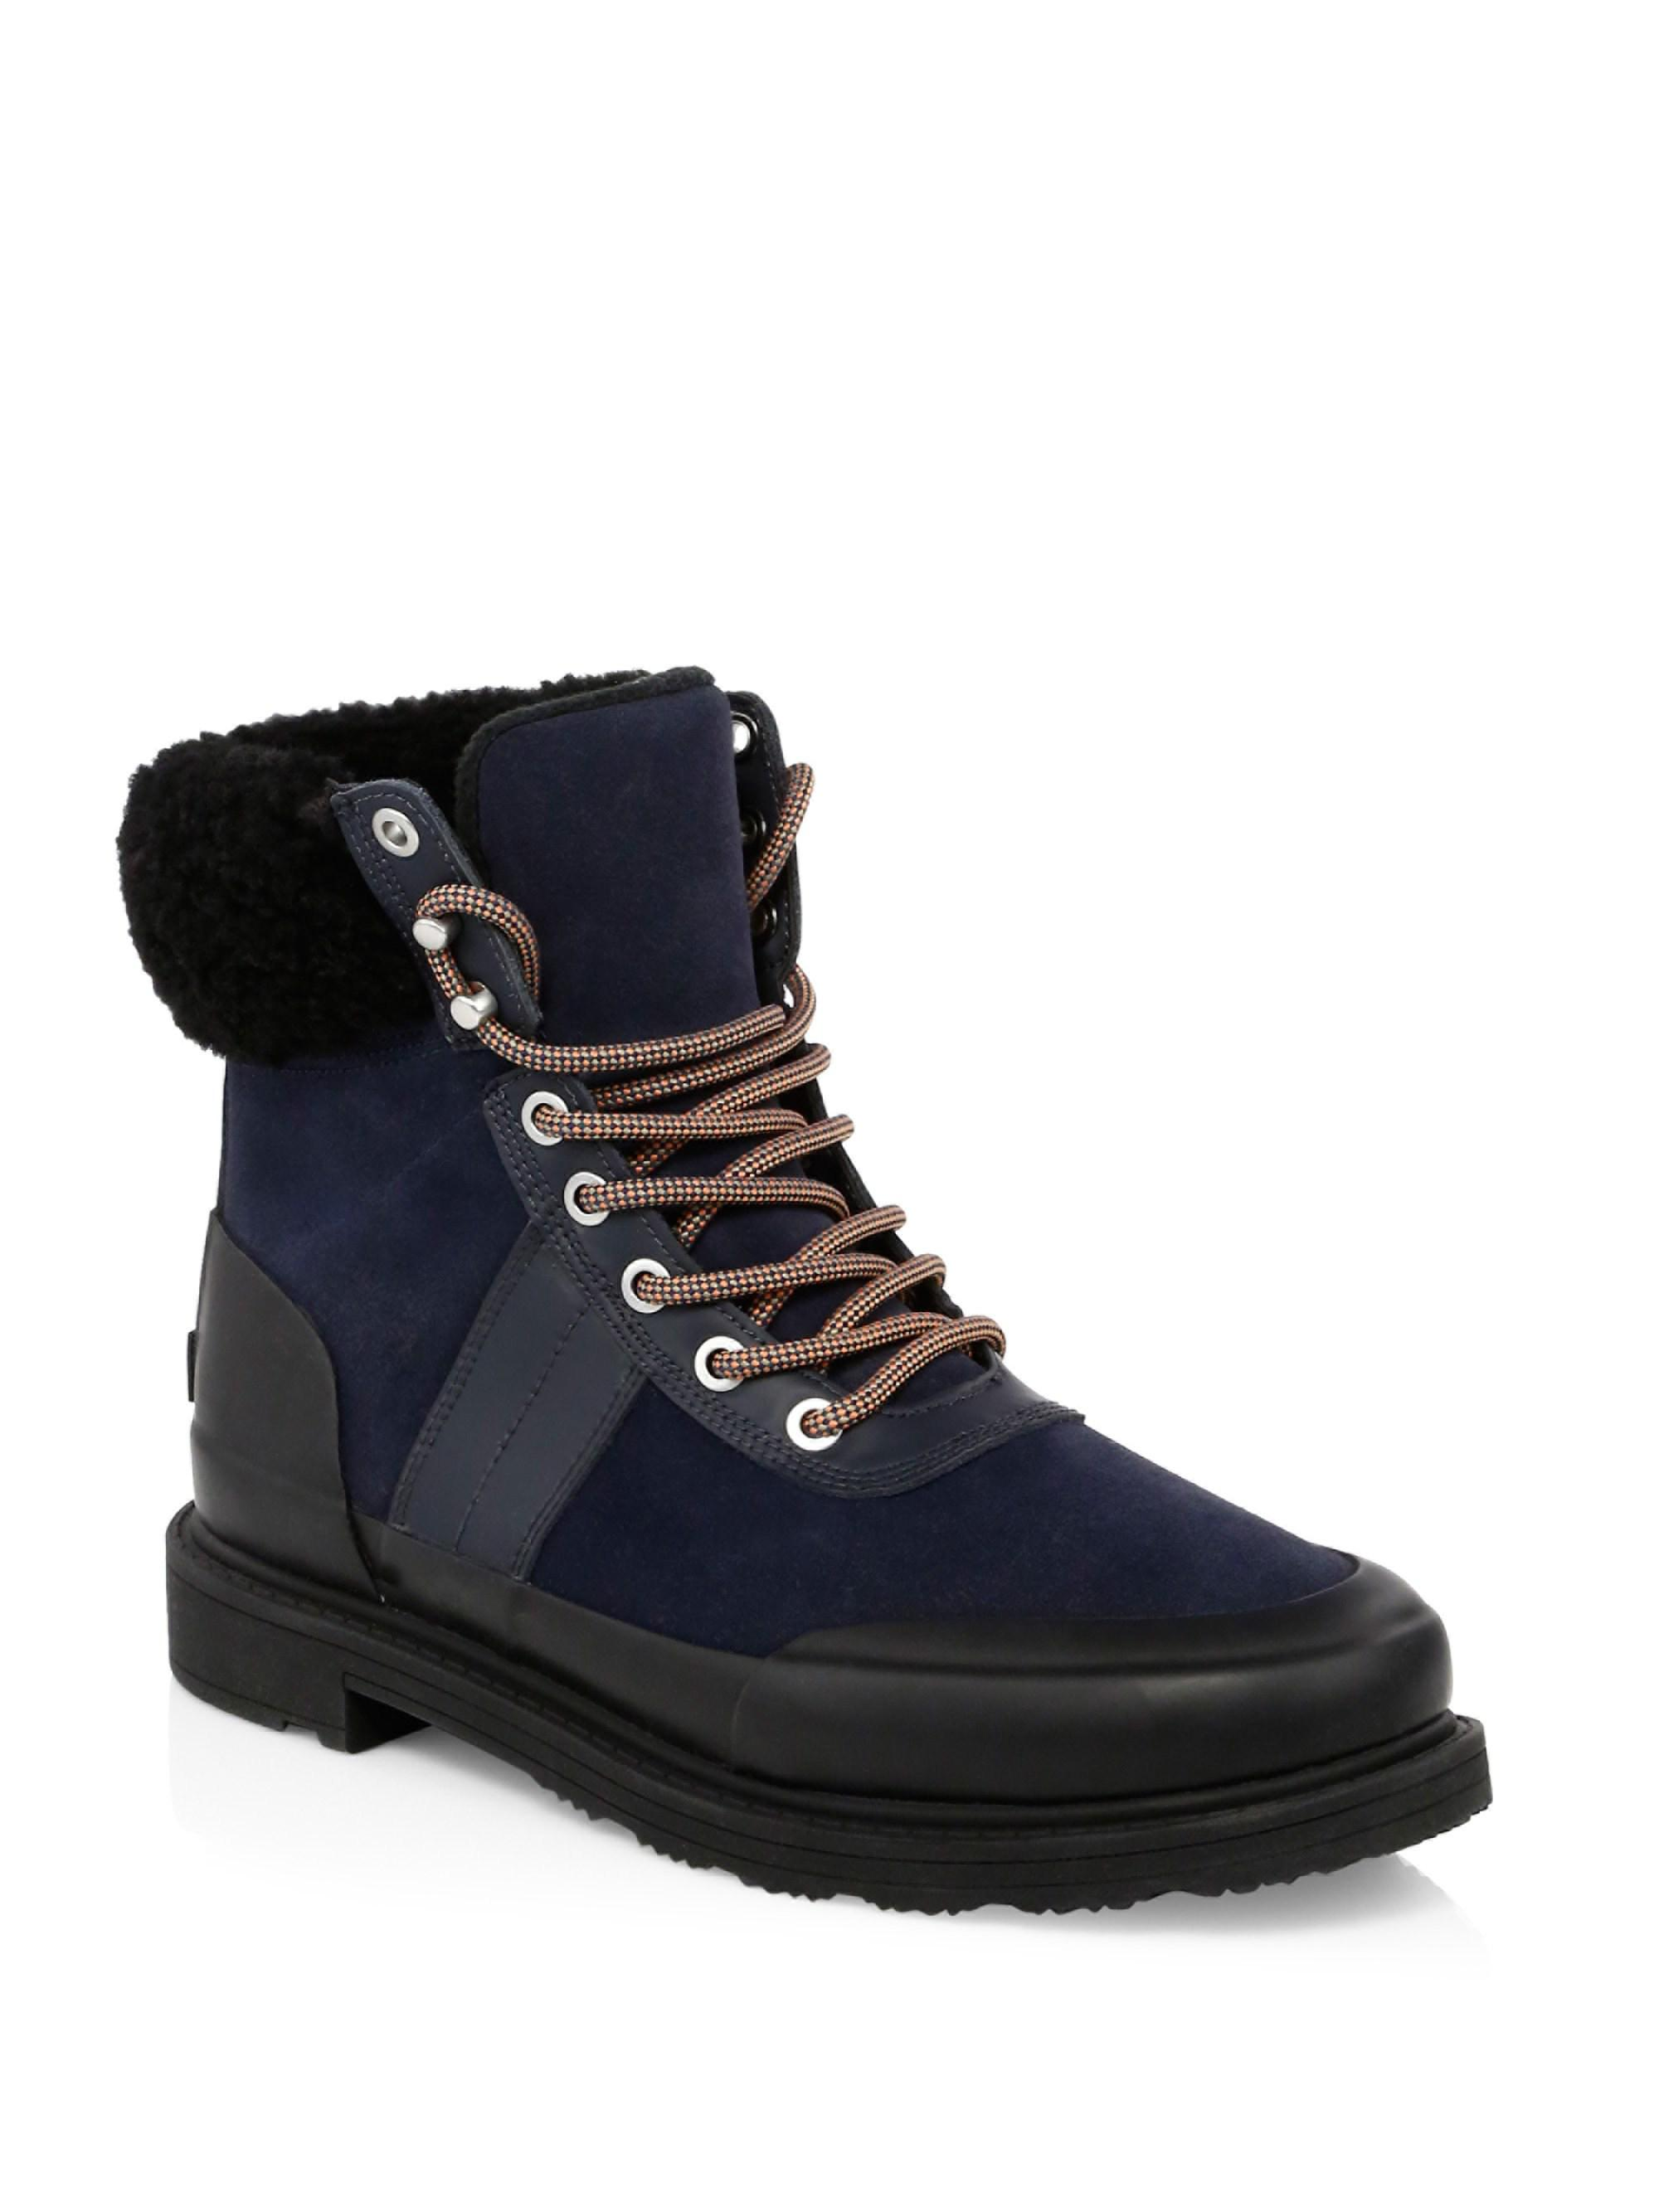 hunter insulated black leather hiker boots